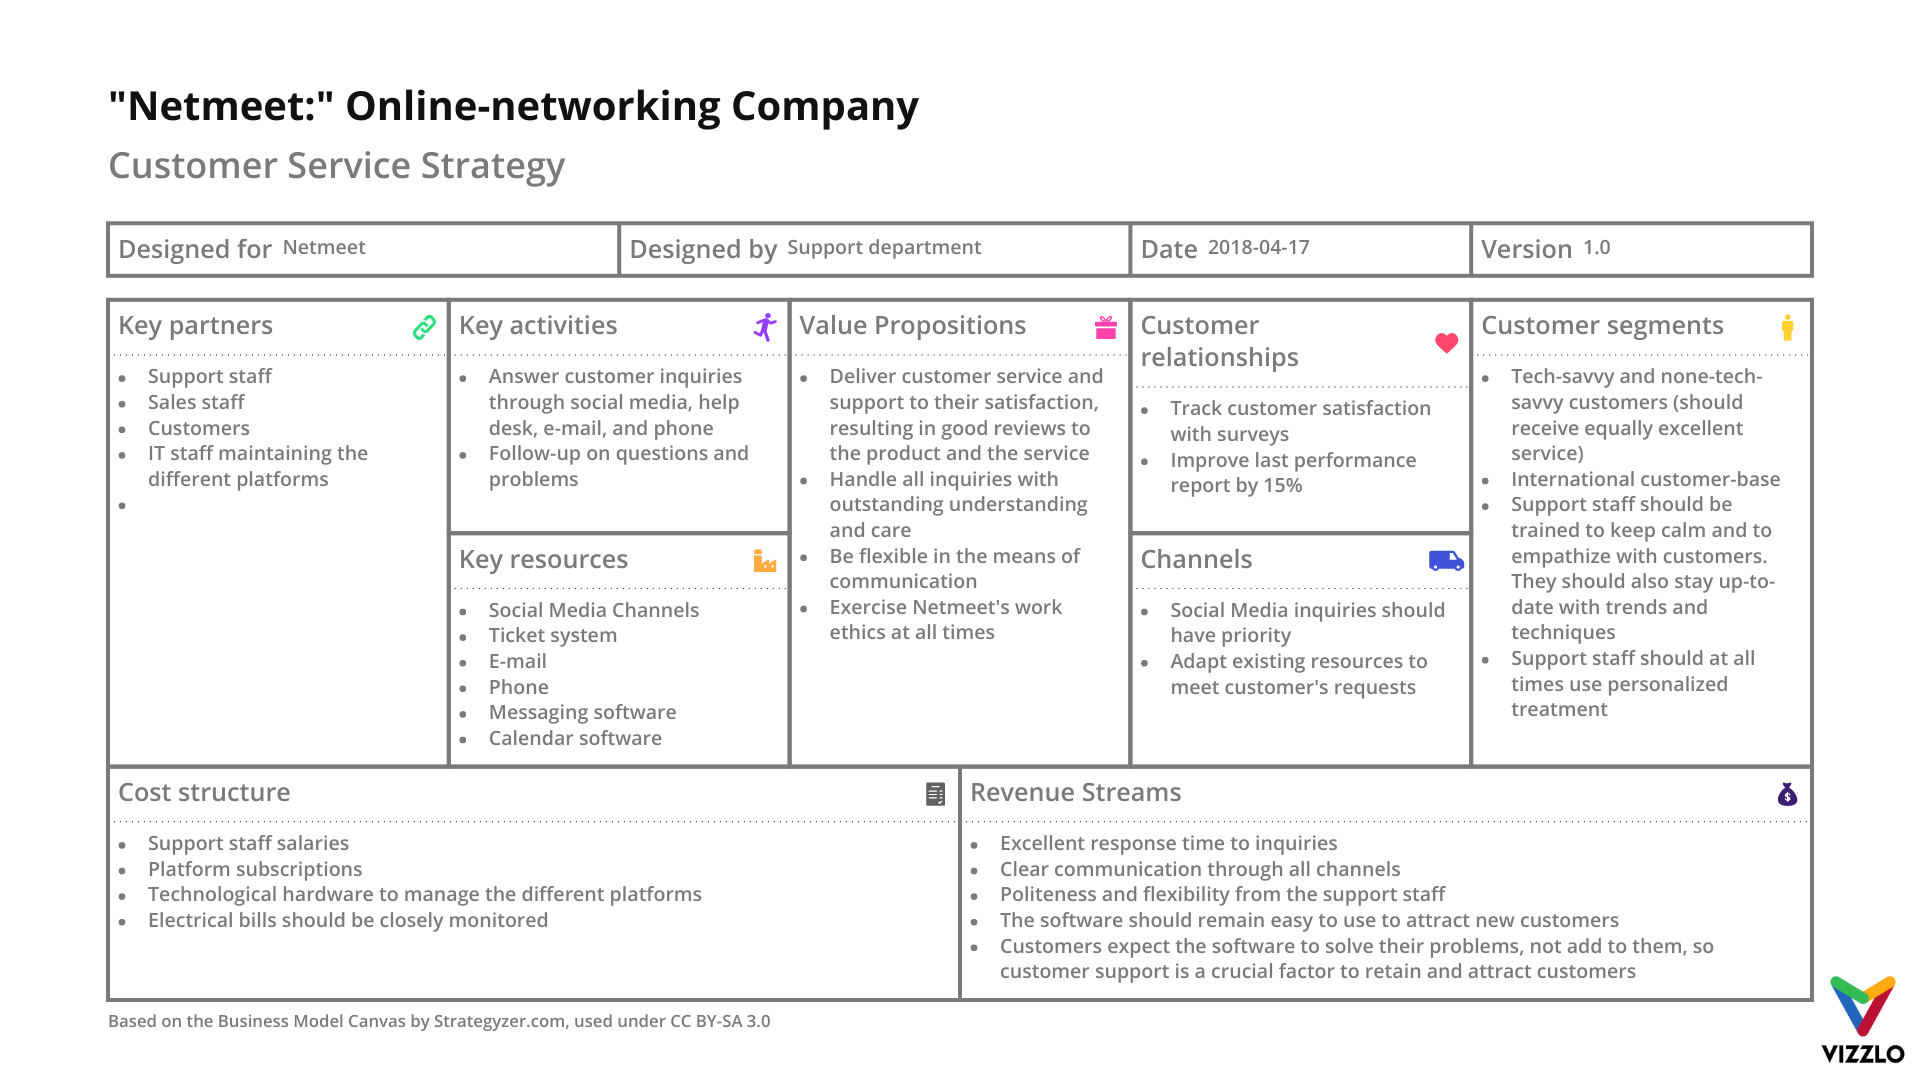 Netmeet Online Networking Company Business Model Canvas Example Vizzlo